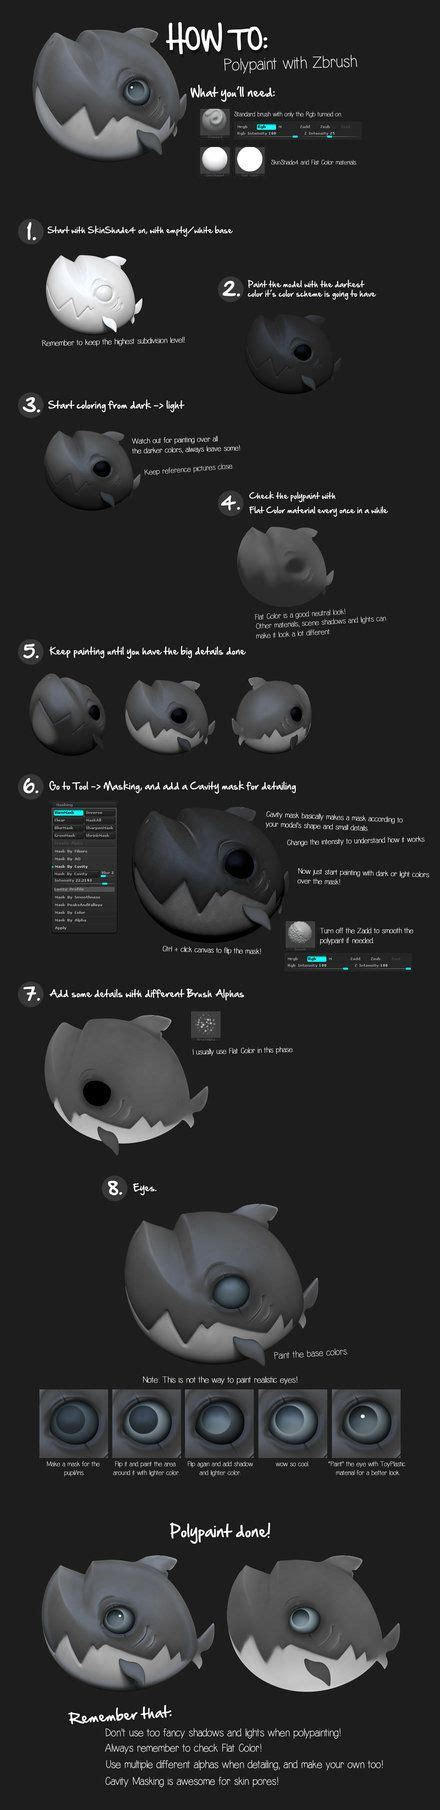 zbrush tutorial polypaint how to polypaint with zbrush by k4ll0 zbrush tutorials